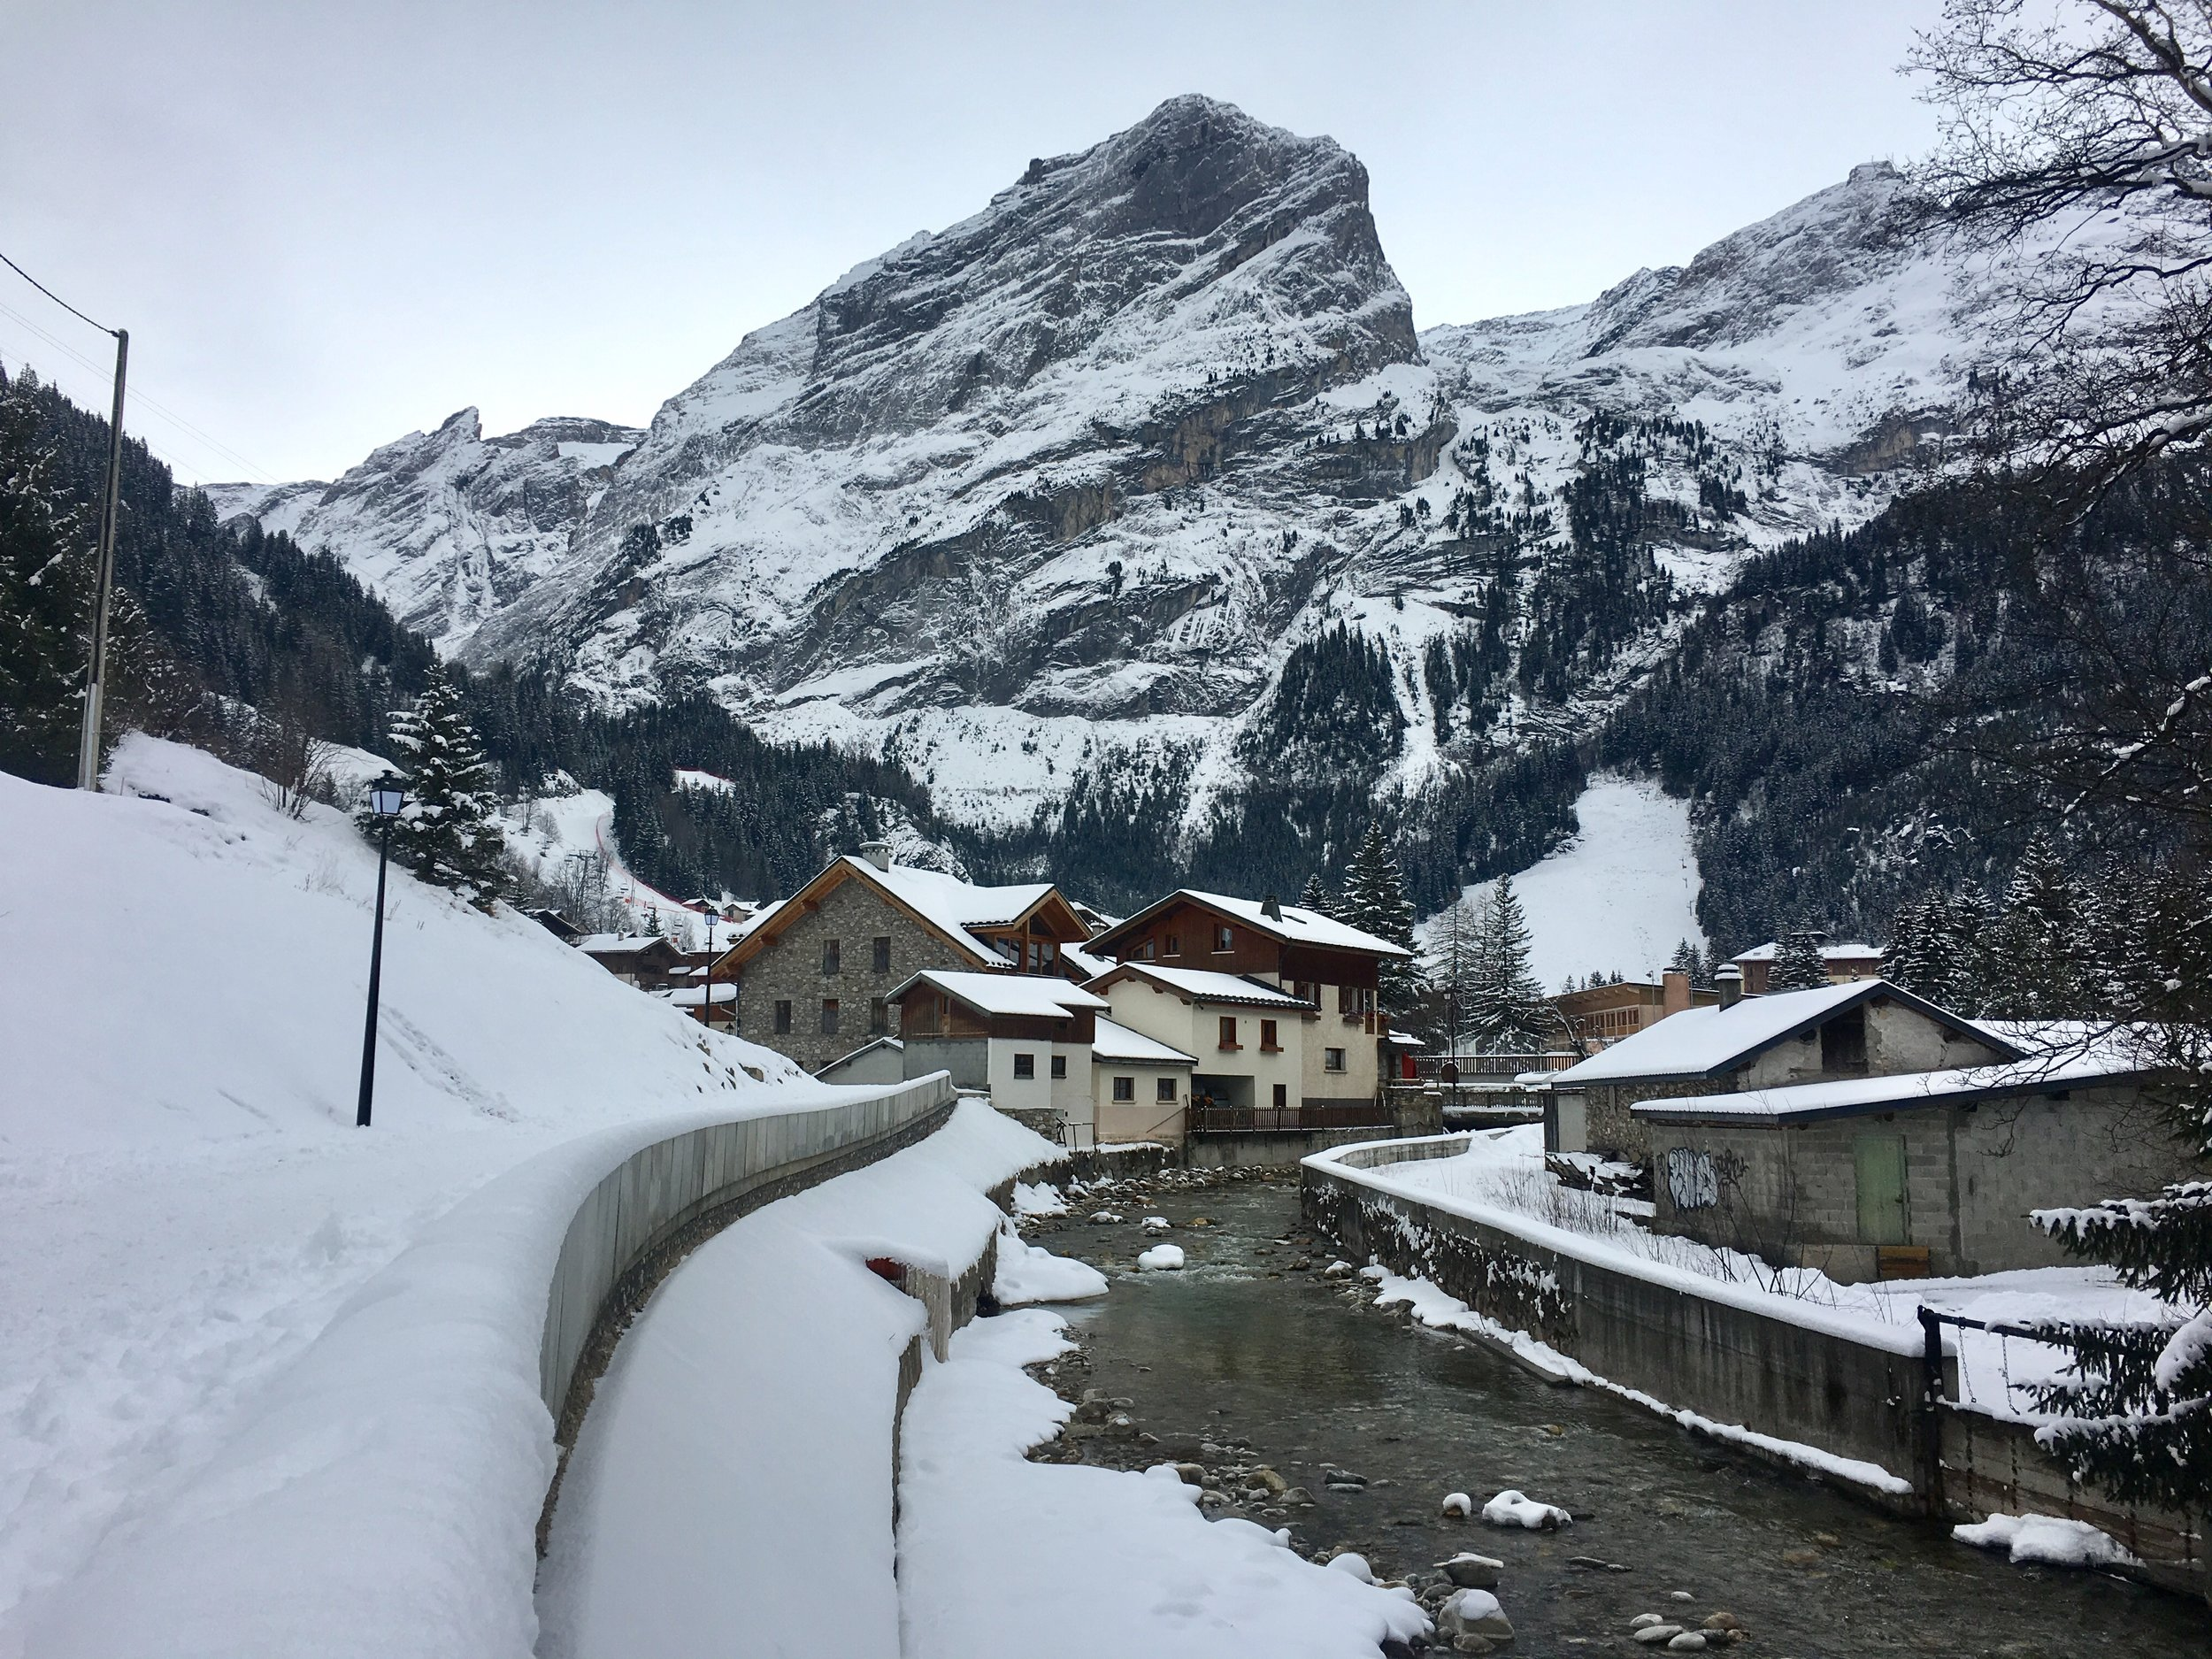 Pralognan la Vanoise, one of the beautiful villages we were working in.